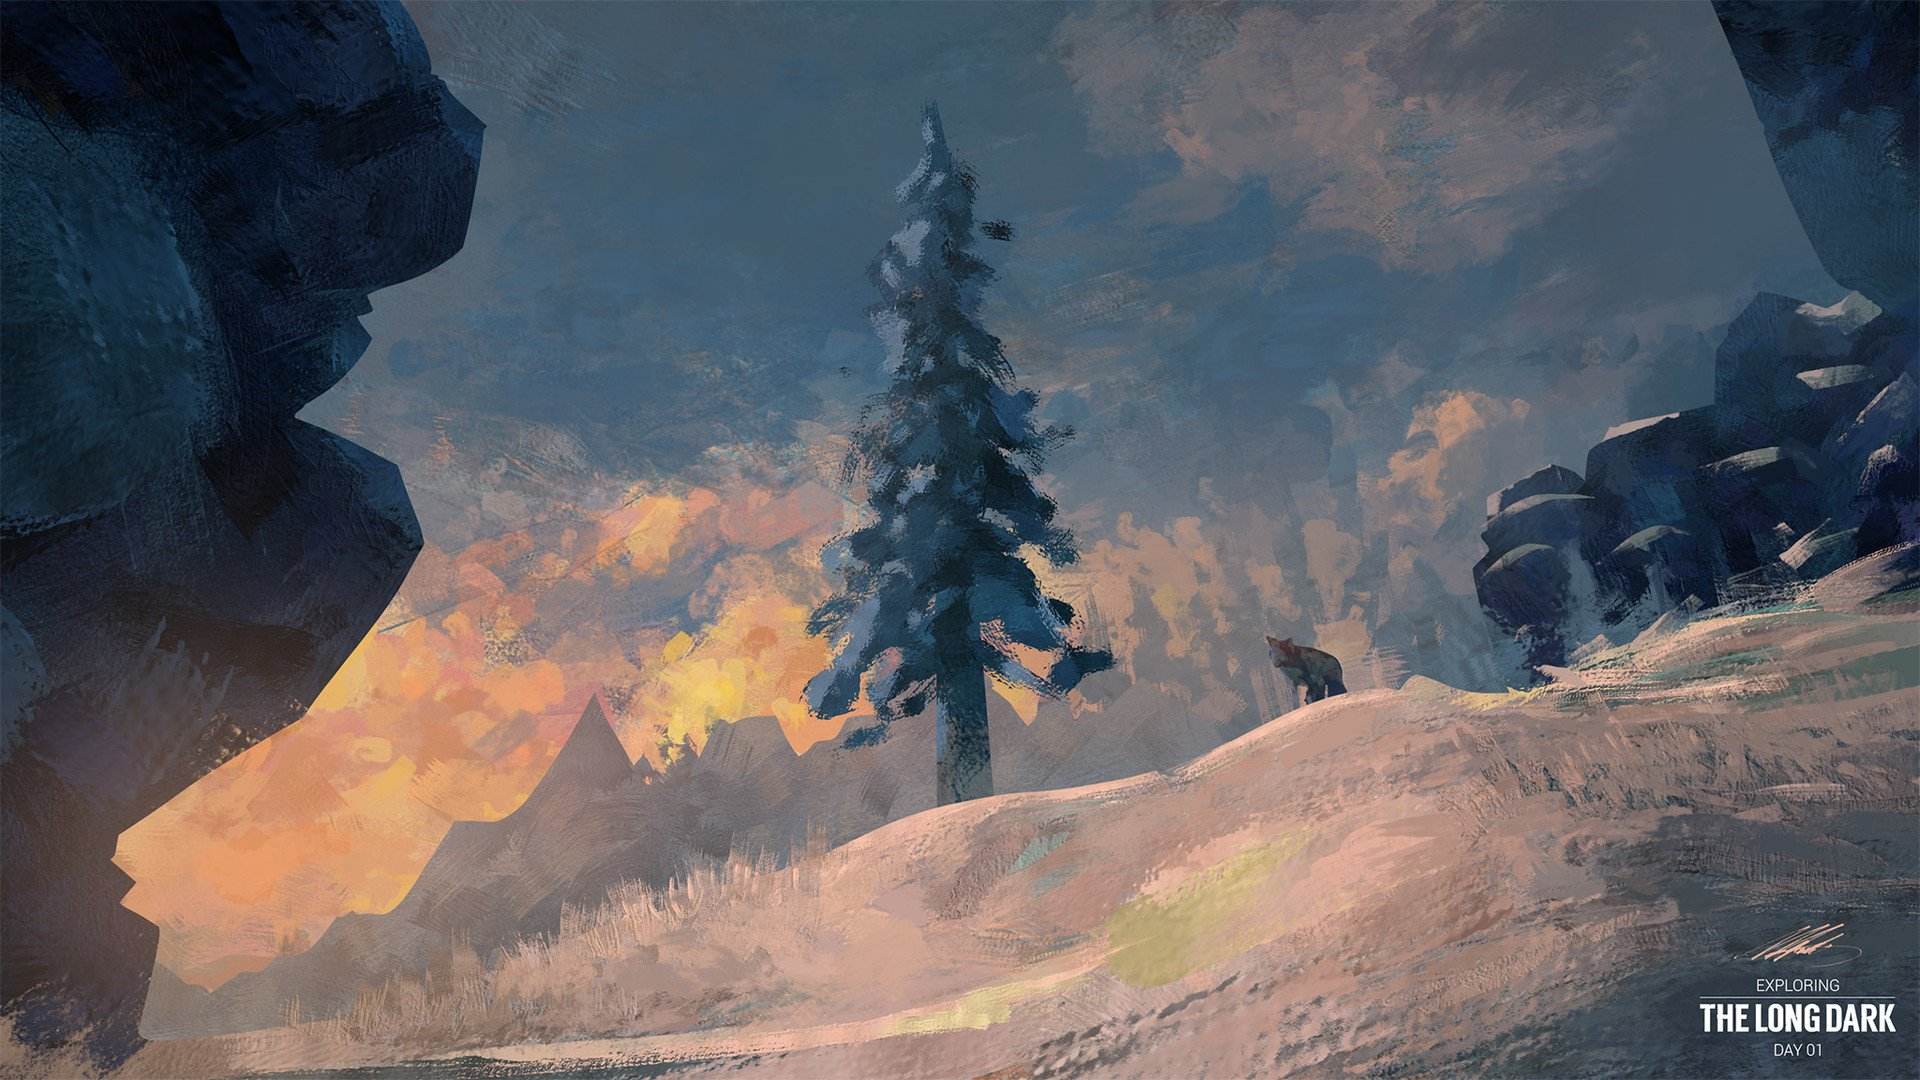 The Long Dark On Twitter Day 01 A Painting By Erick